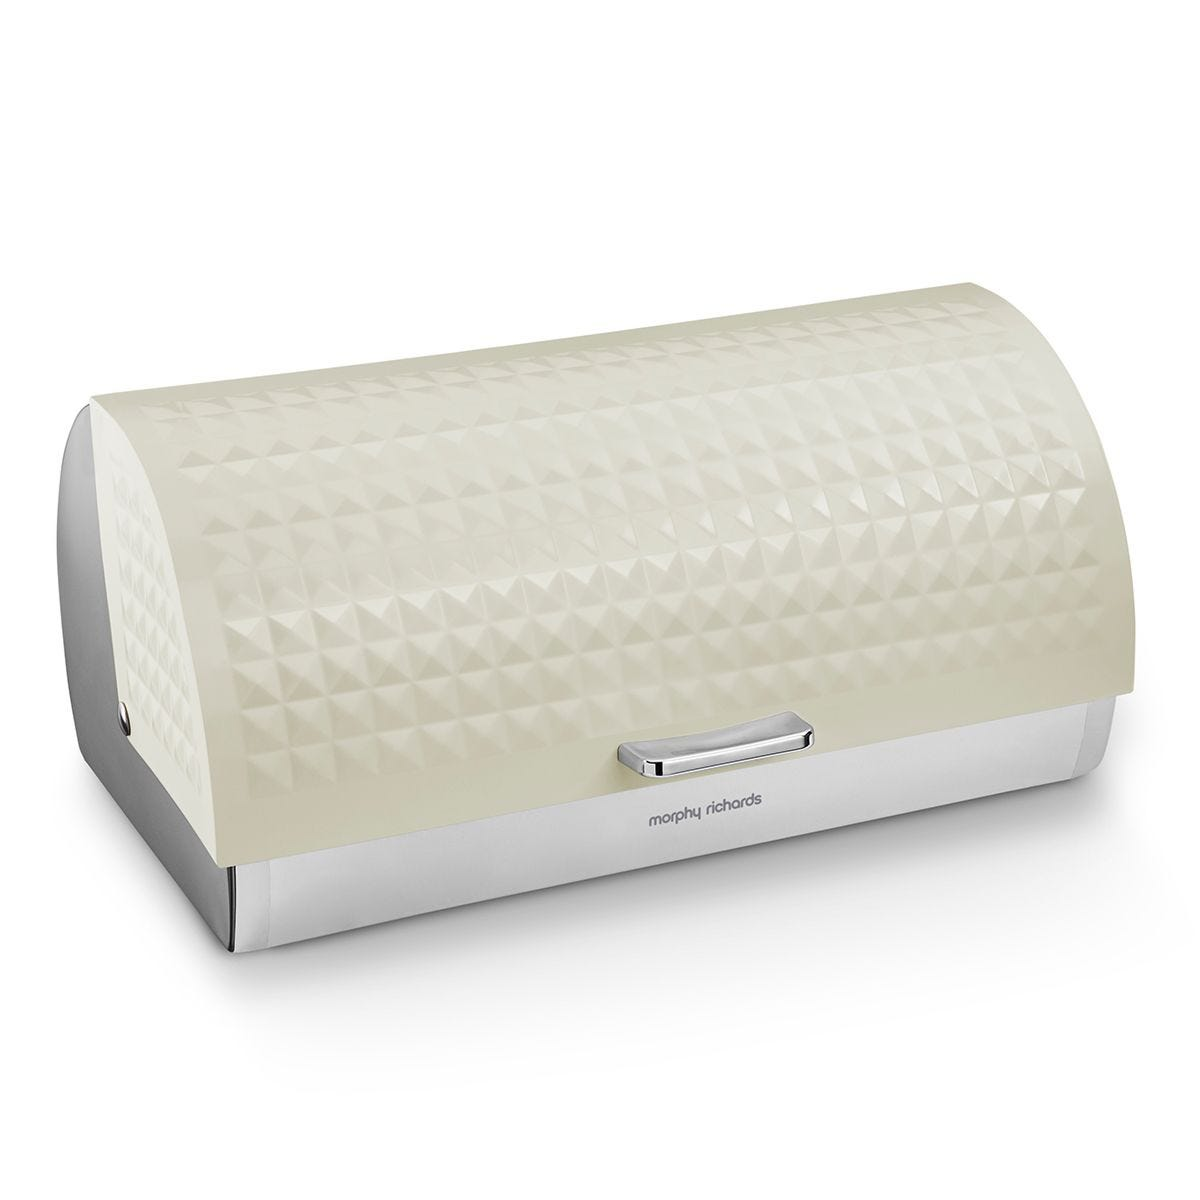 Morphy Richards Dimensions Roll Top Bread Bin - Ivory Cream